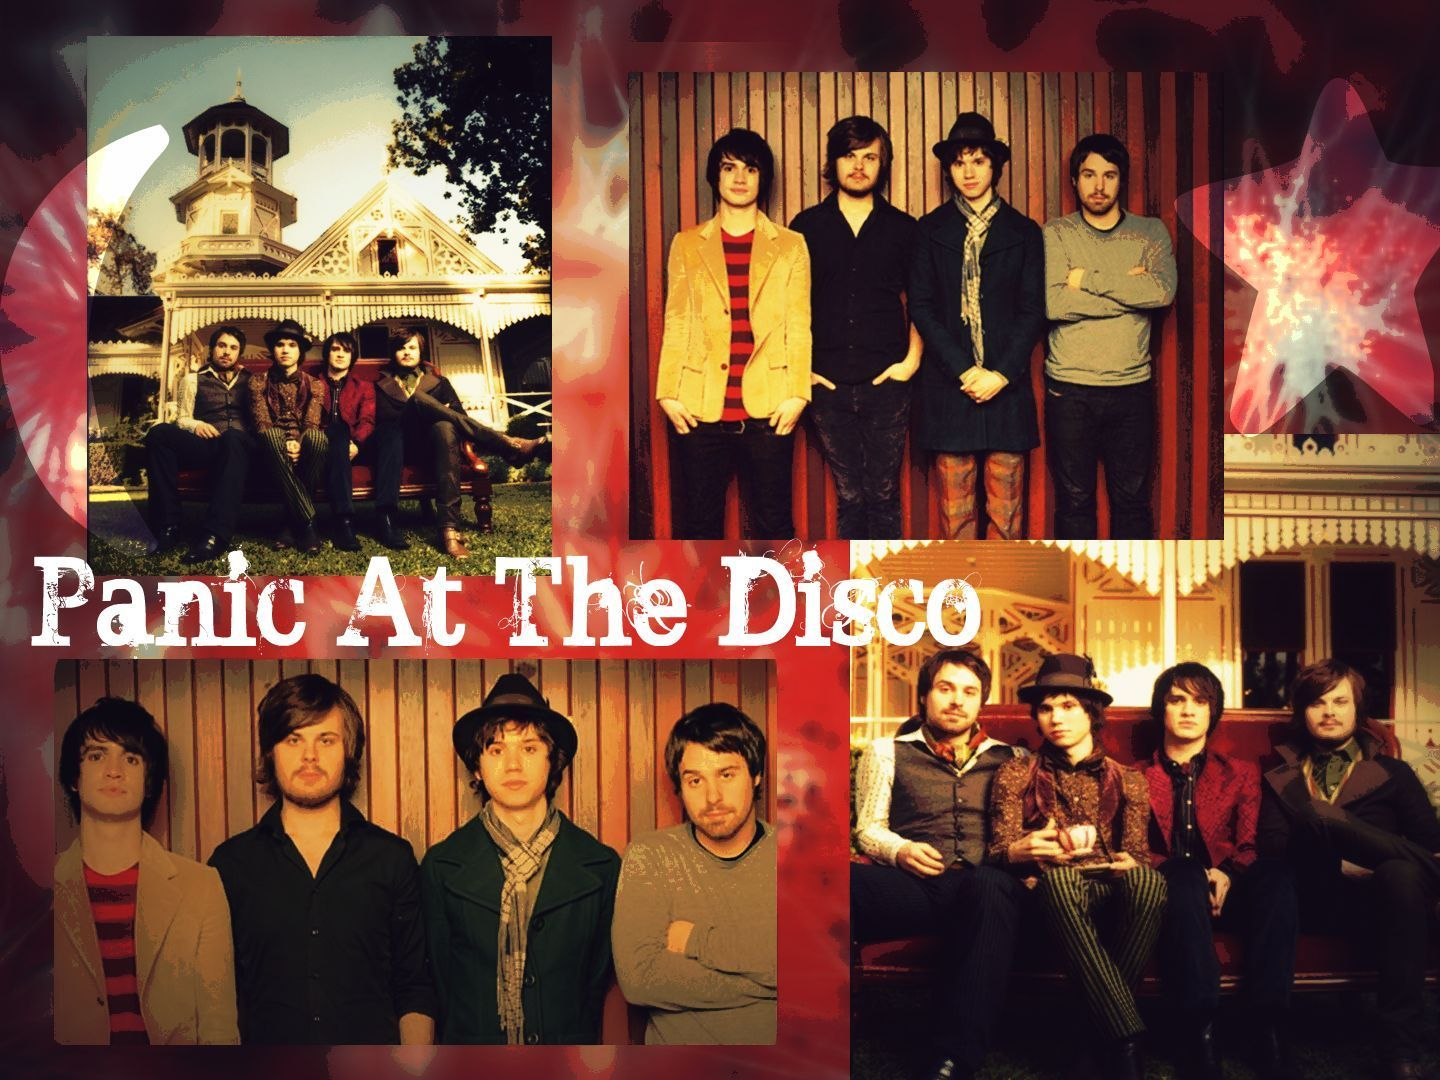 panic at the disco - photo #26